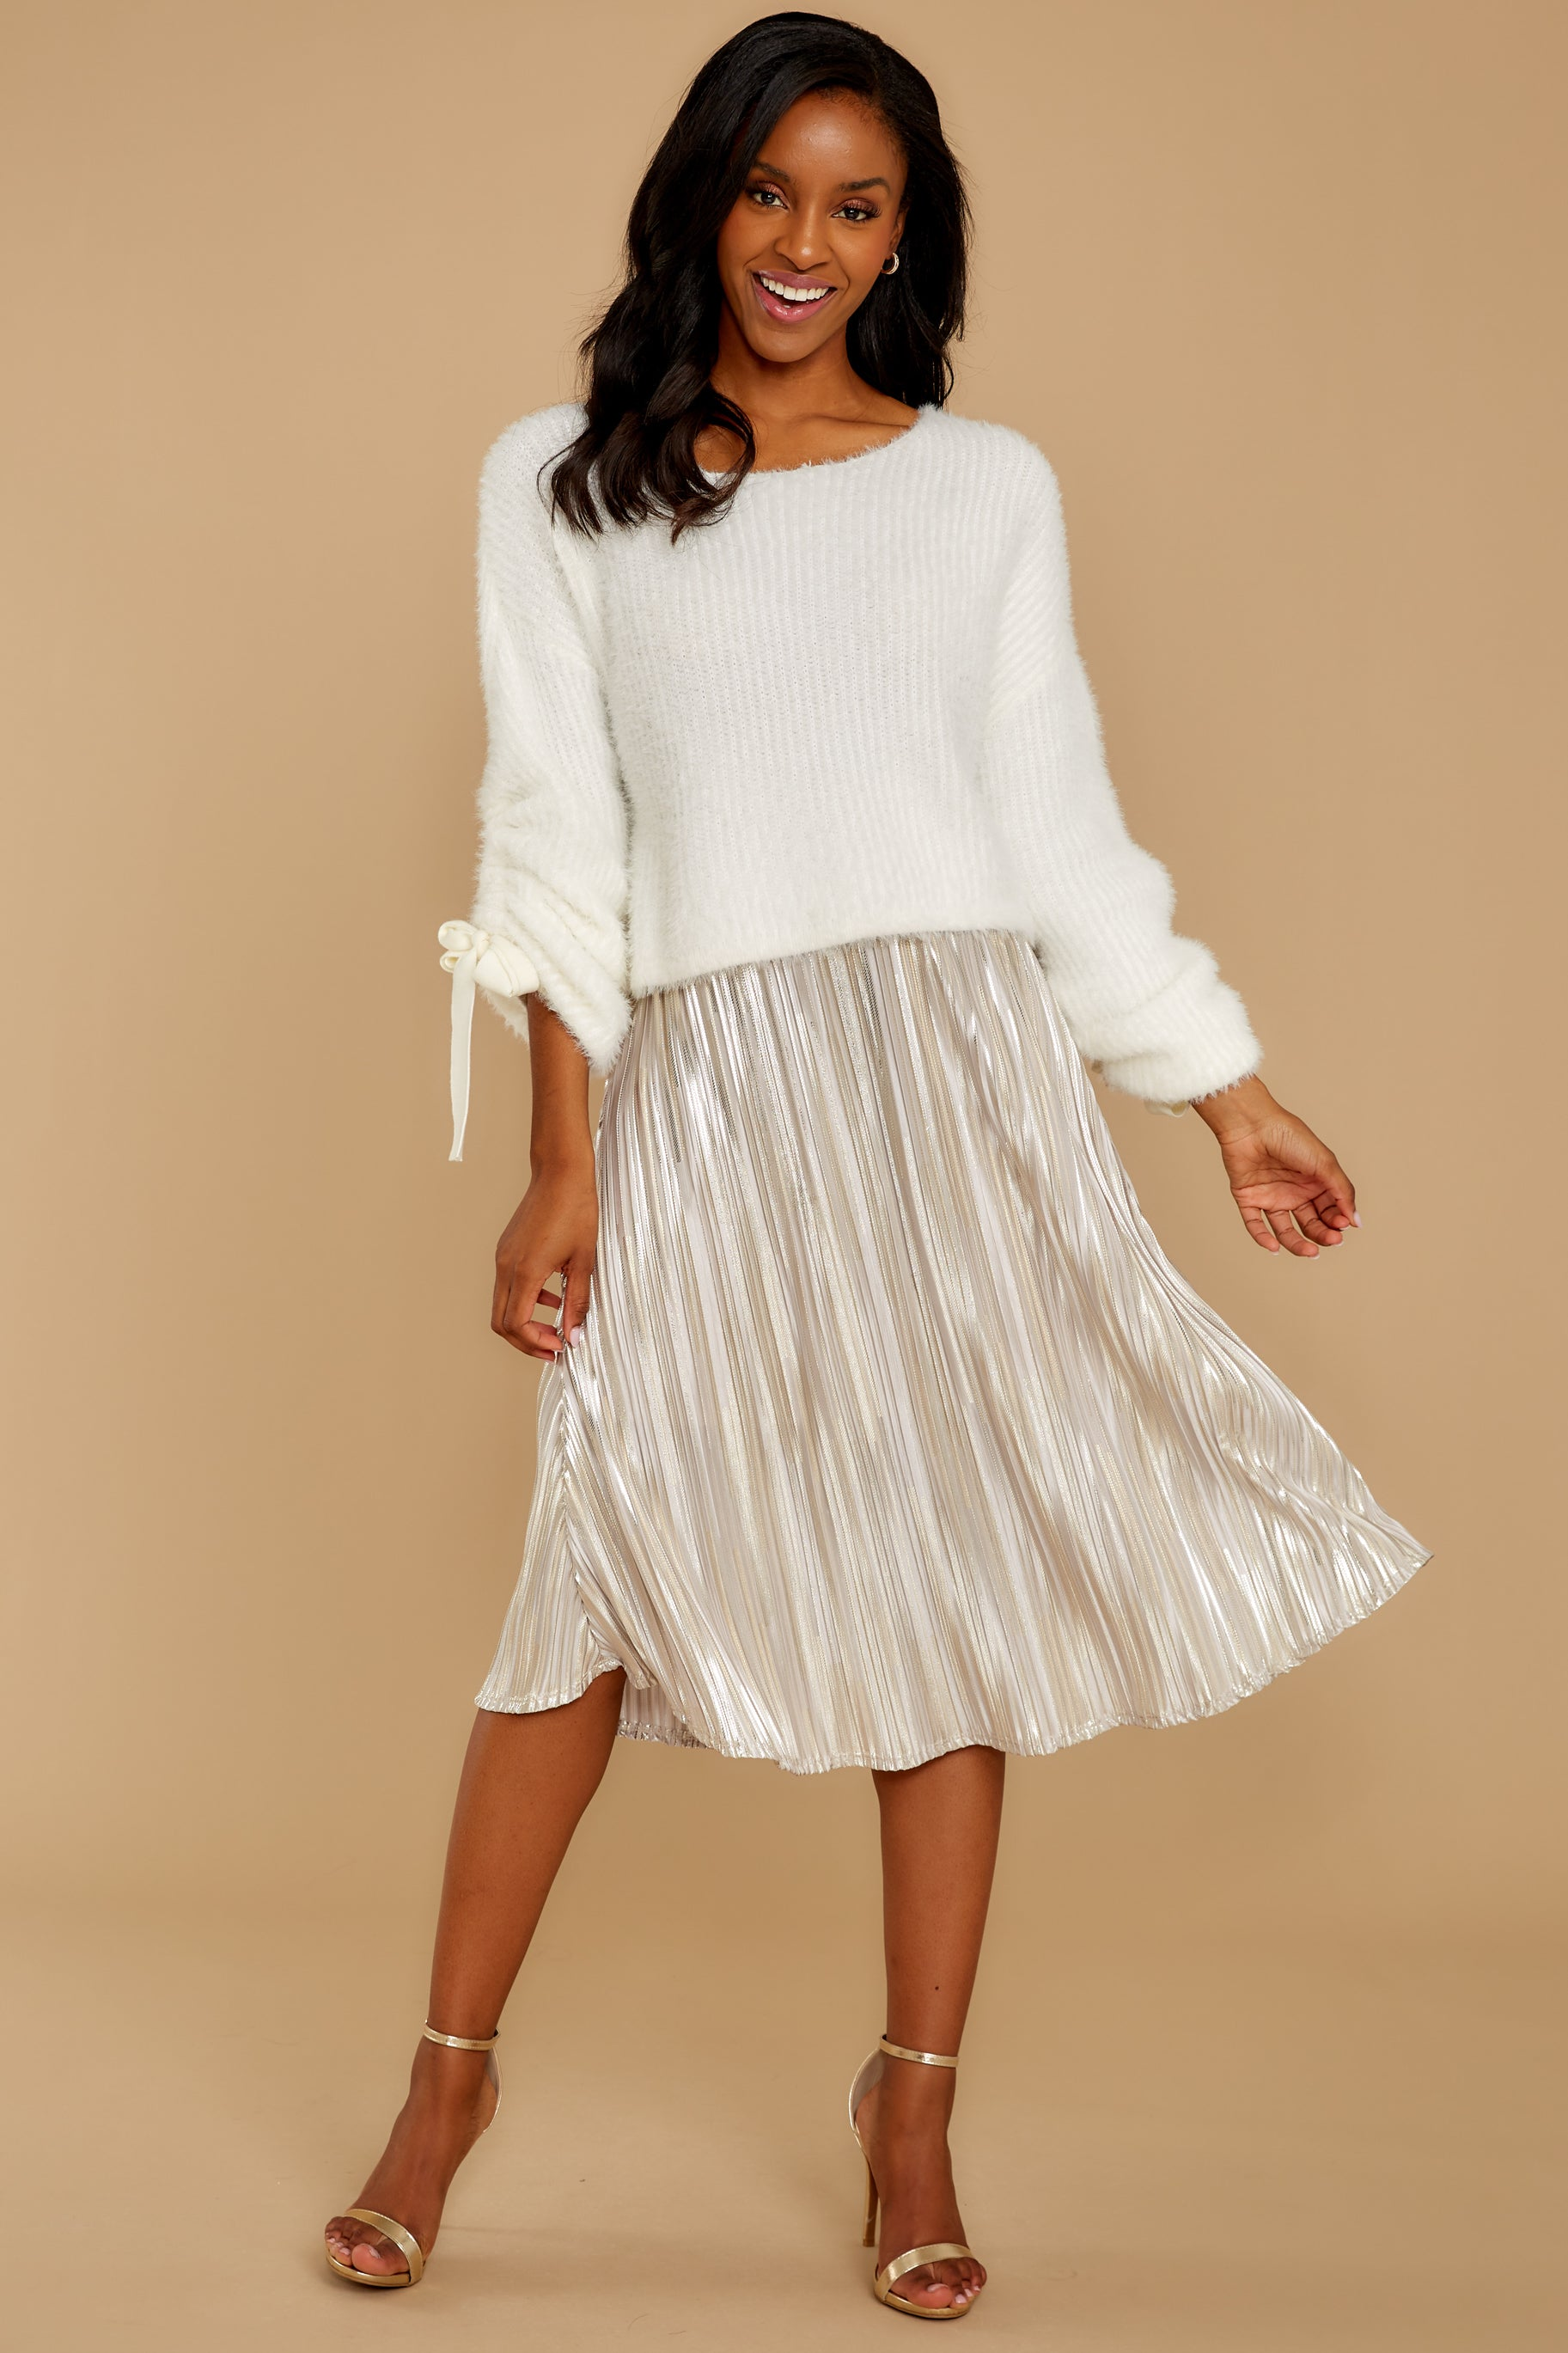 10 A Thing For You Champagne Midi Skirt at reddress.com